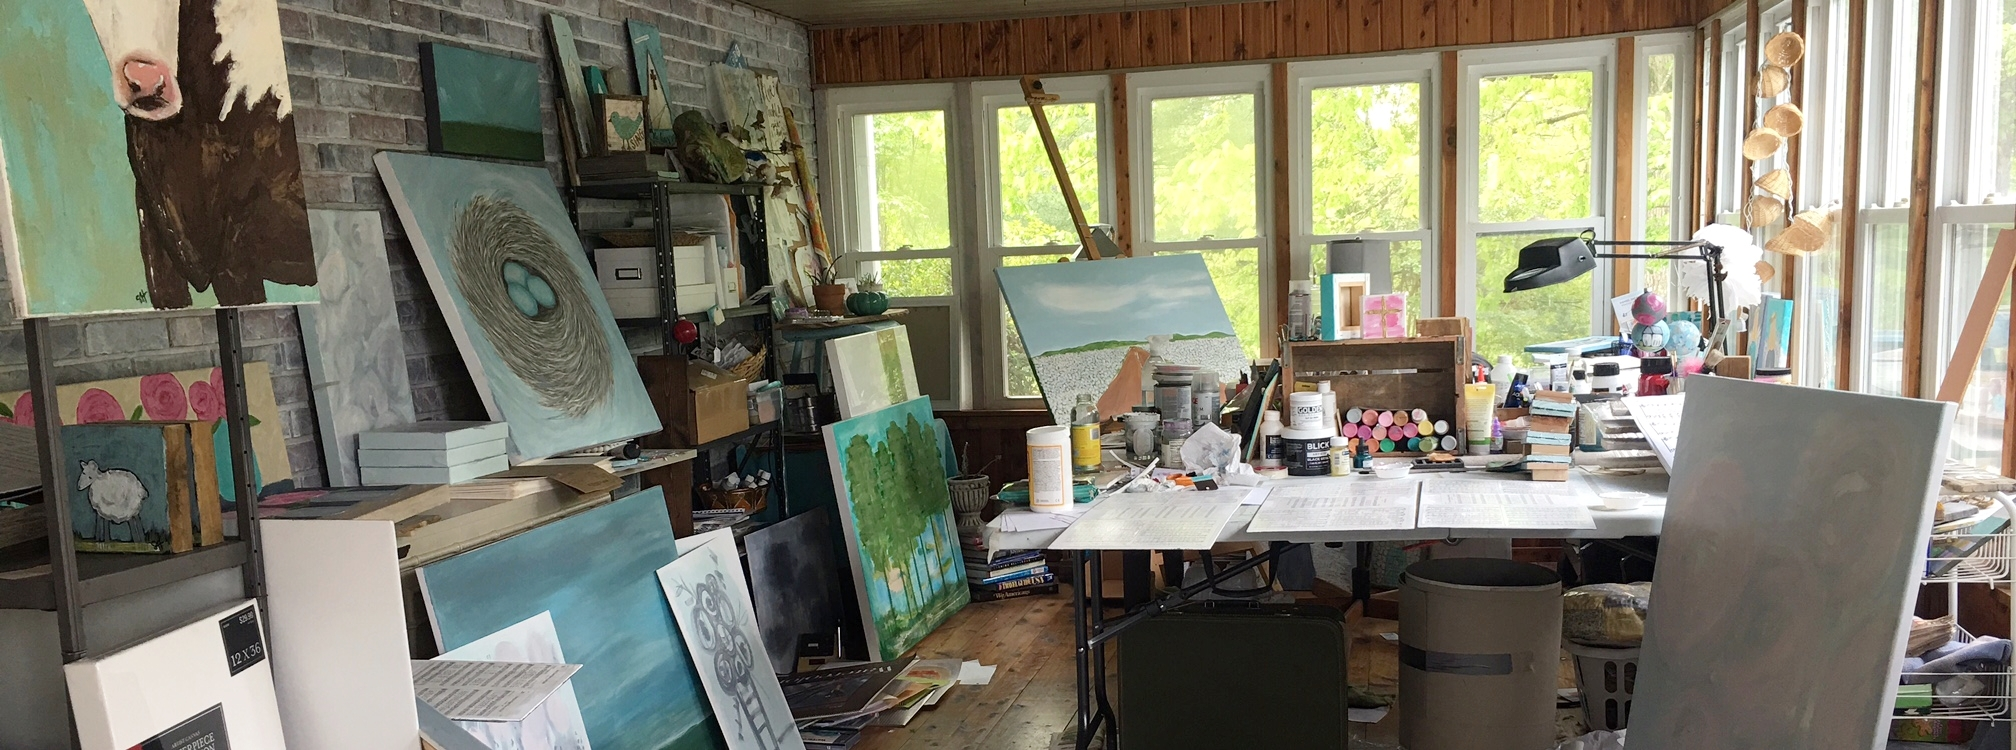 The creative chaos that is my home studio.